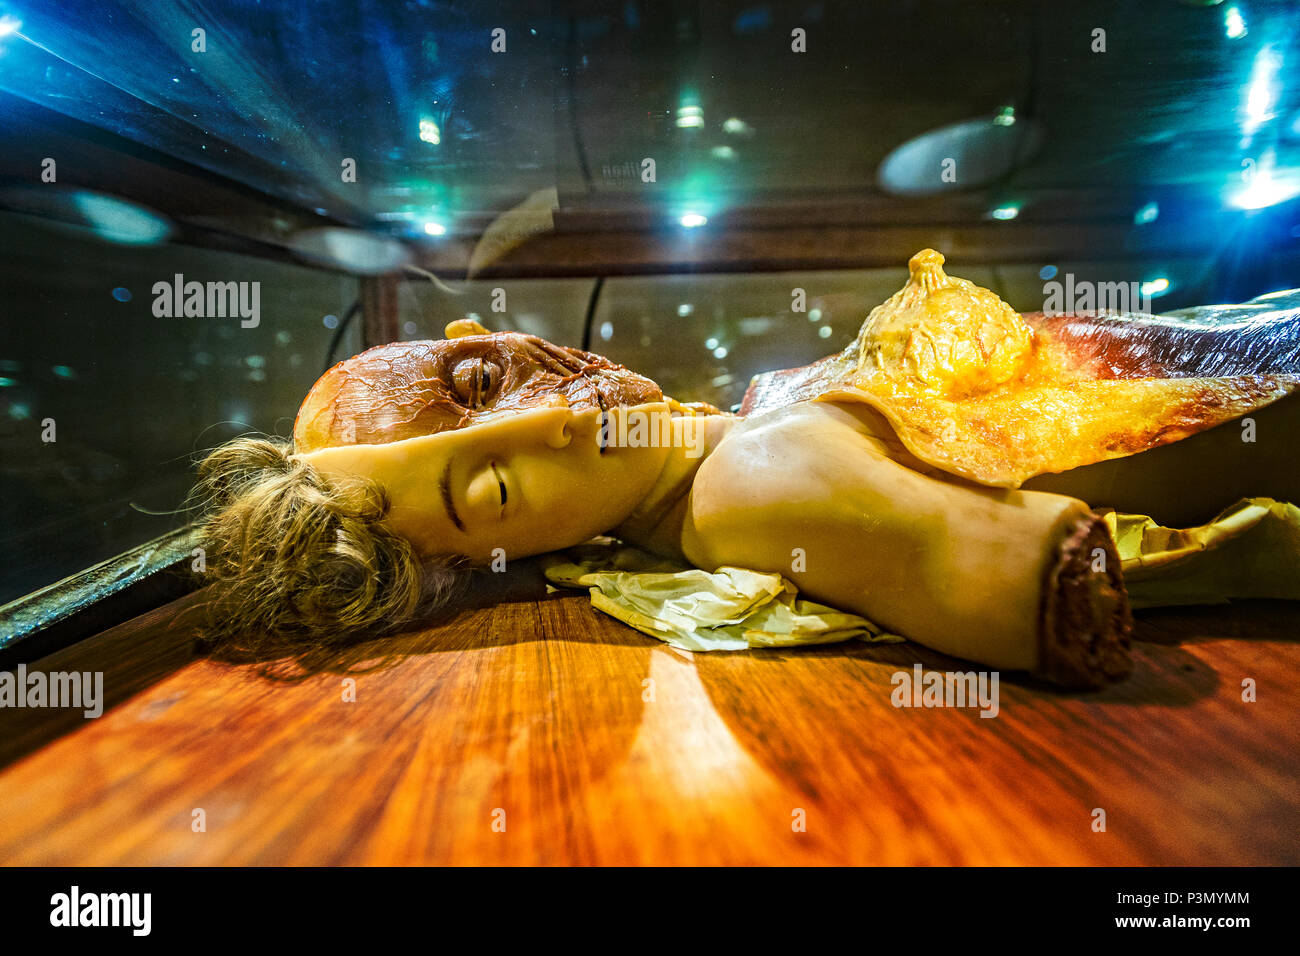 Italy Sardinia Cagliari Collection of Anatomical Waxes by Clemente Susini - Stock Image